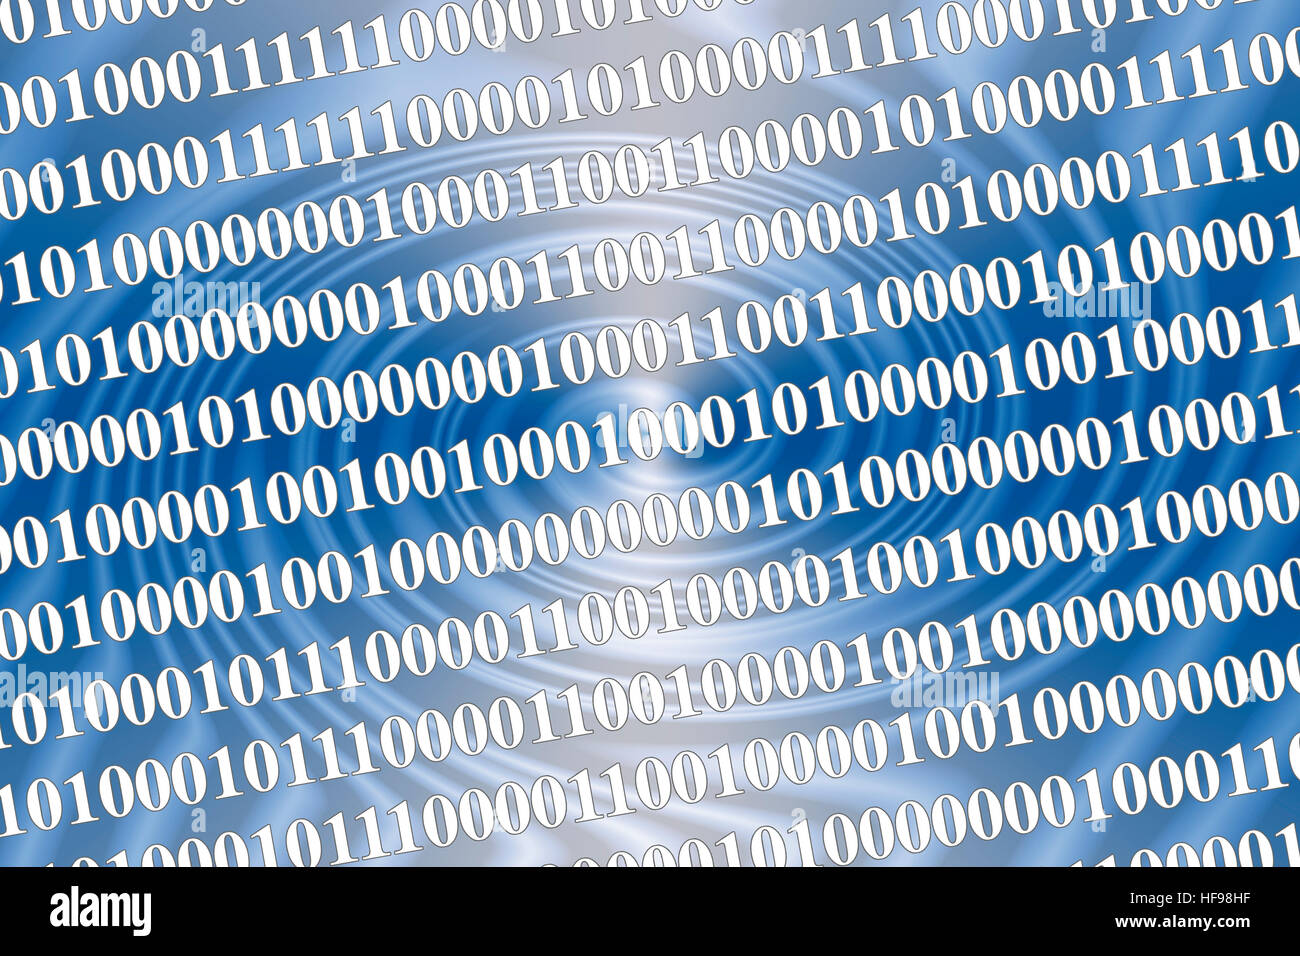 Symbolic picture - binary code and data processing code